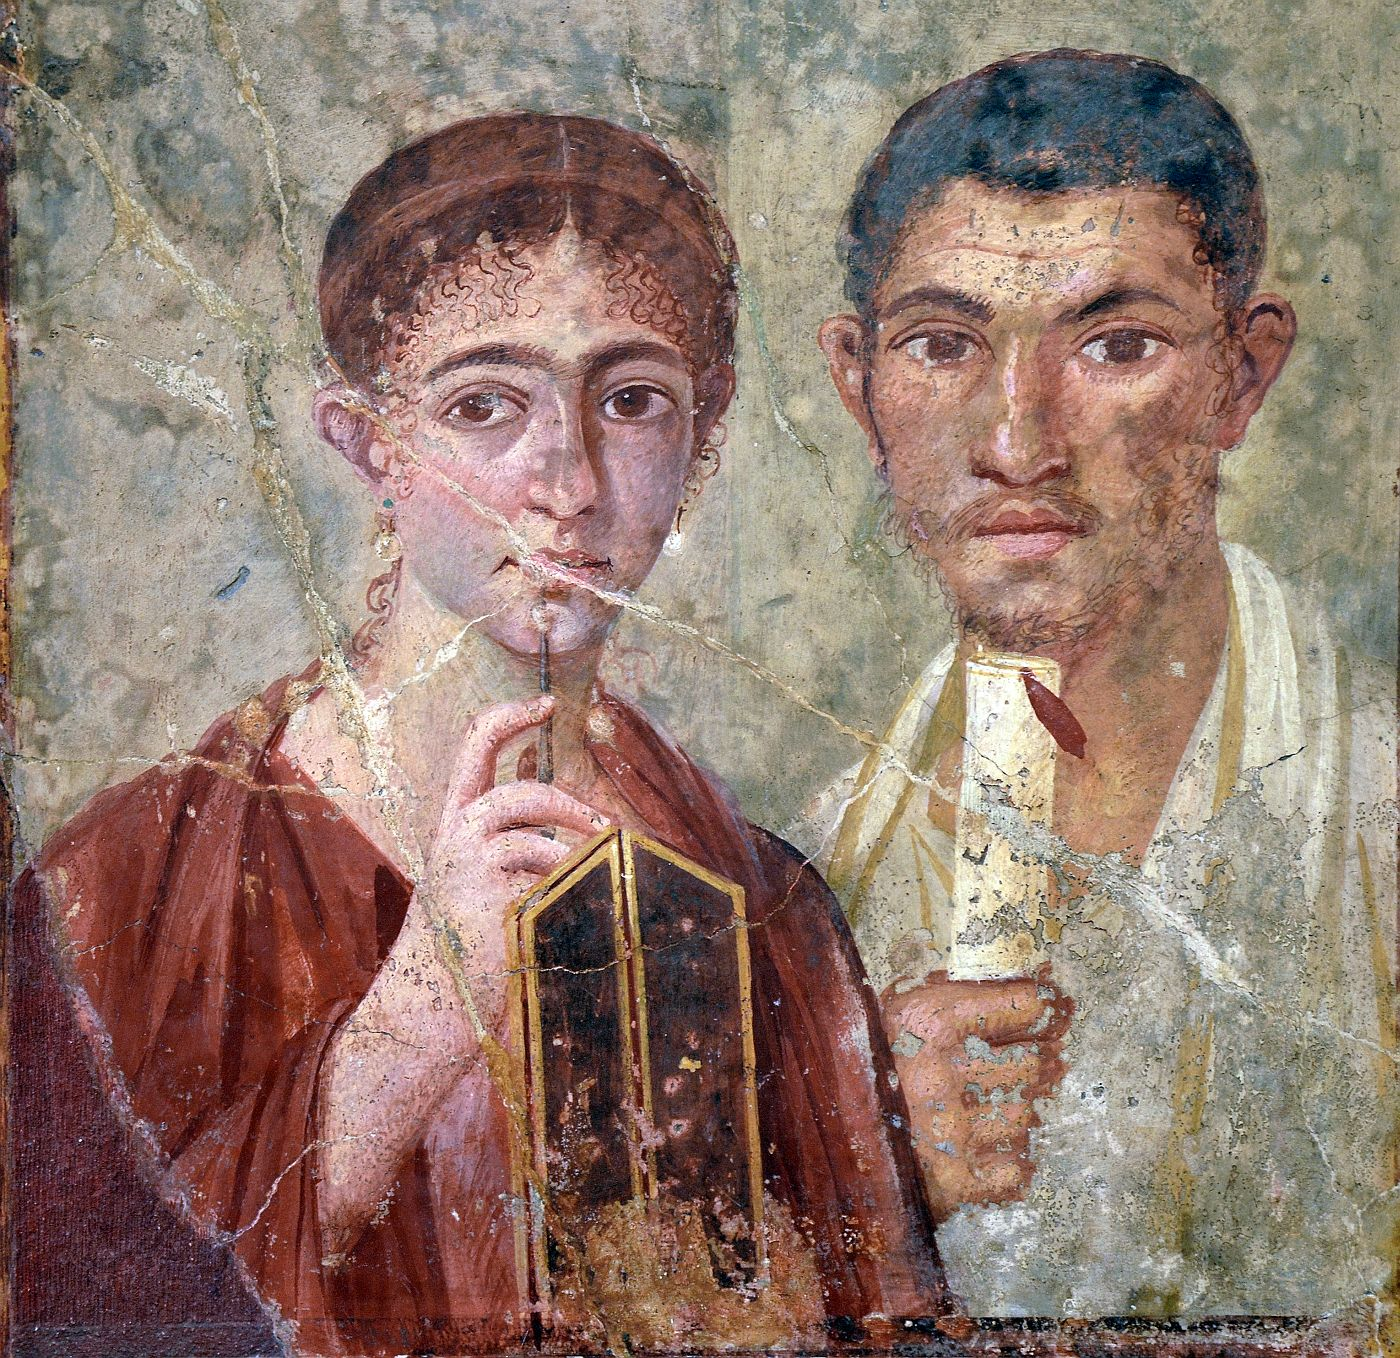 Fresco showing a Roman couple